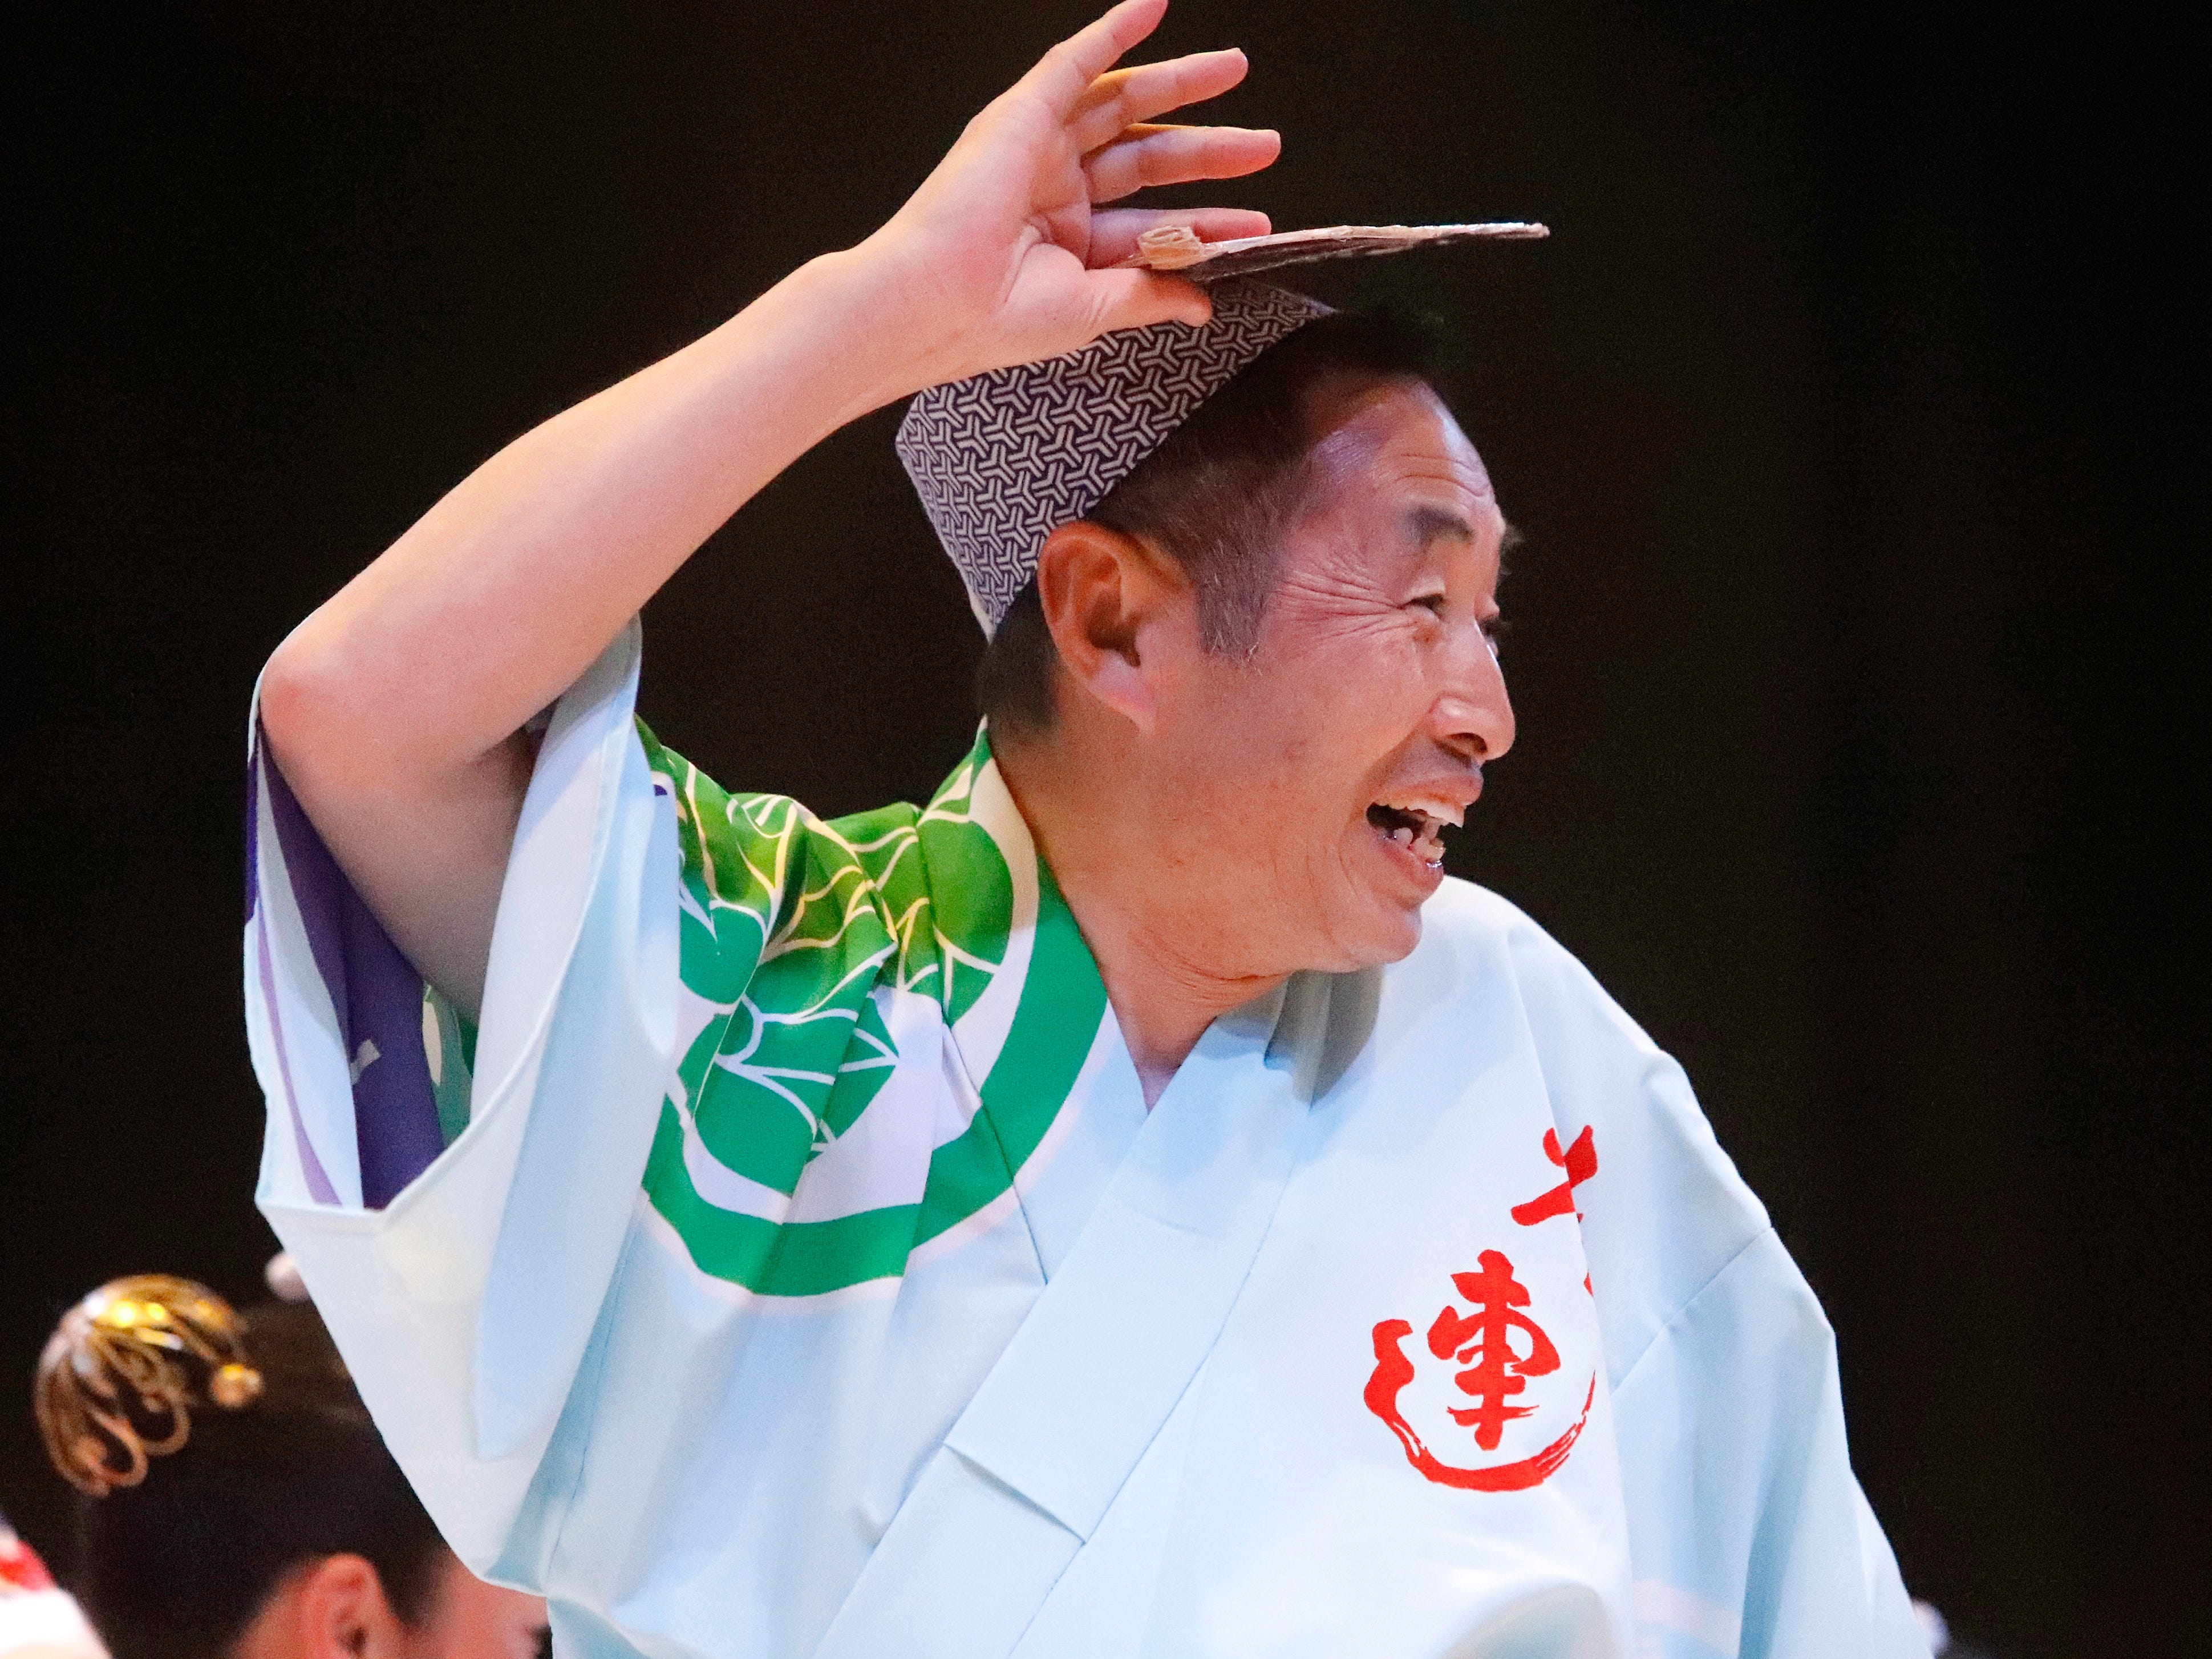 Awa-Odori dance performance during the Cherry Blossom Festival at Sequoia Middle School in Redding on Saturday, April 27, 2019.